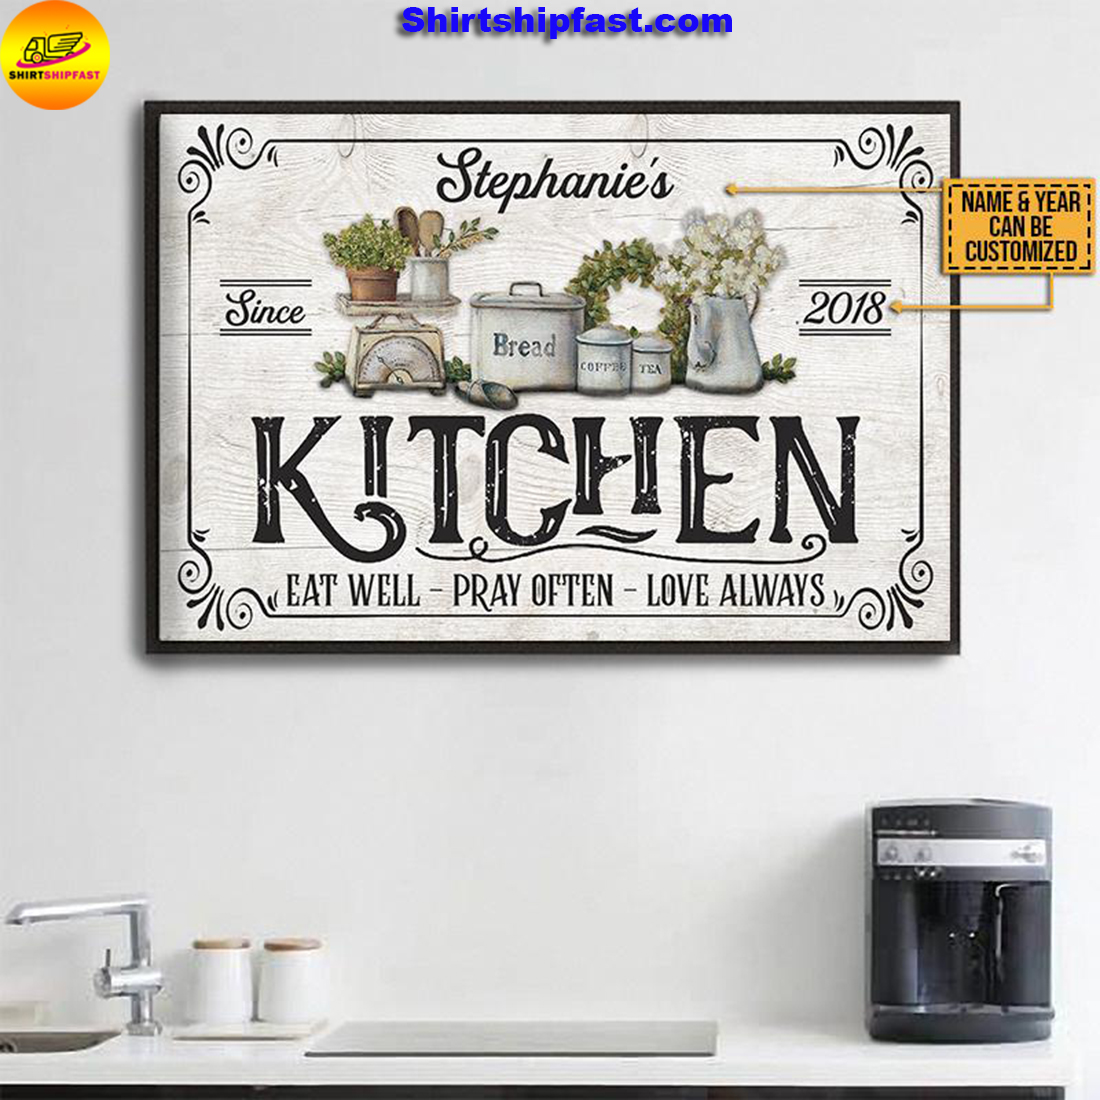 Personalized Farmhouse Kitchen Love Always Customized Poster - Picture 2